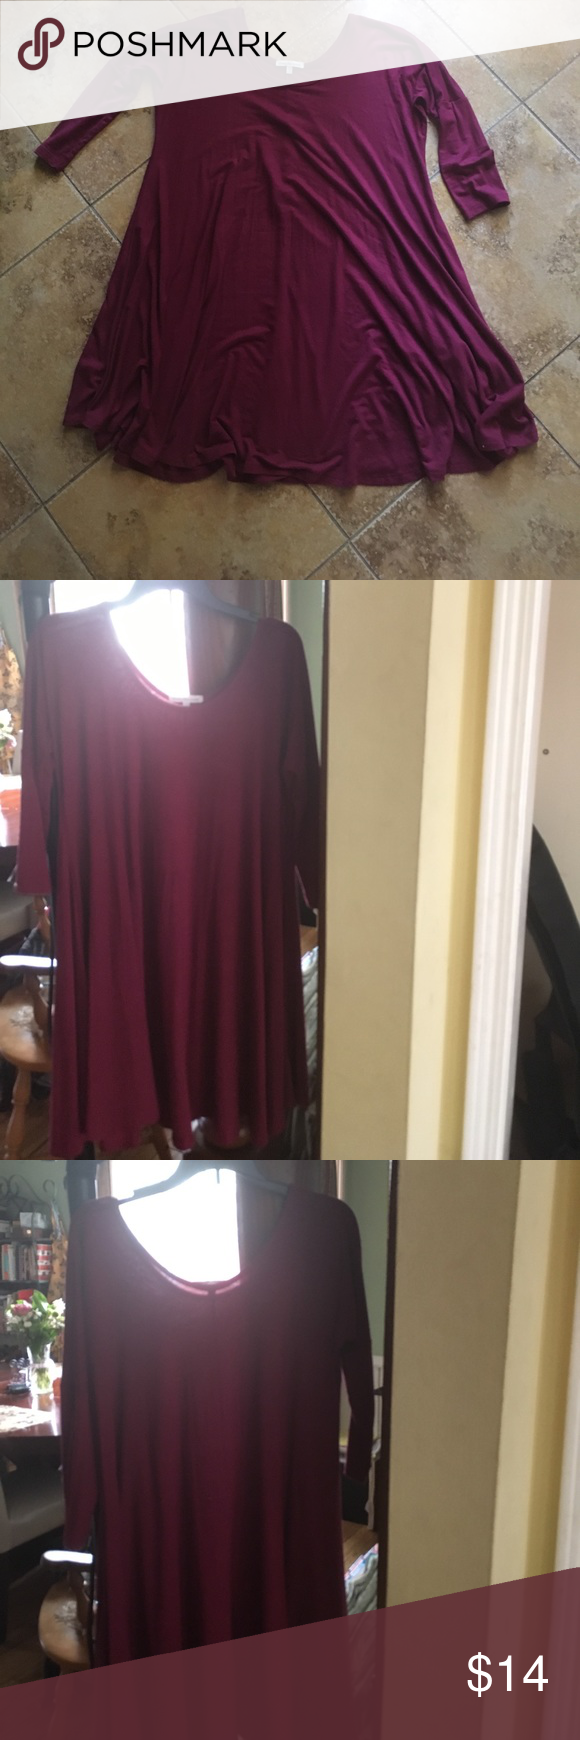 Gorgeous Charlotte Russe Dress! A cute burgundy dress bought from Charlotte Russe. Tight on top and a flowy skirt on bottom. Fabric is pretty lightweight and only a little sheer. Quarter sleeves, and the skirt goes to the knees on the right fit. Only ever worn once. No wear or tear. Charlotte Russe Dresses Long Sleeve